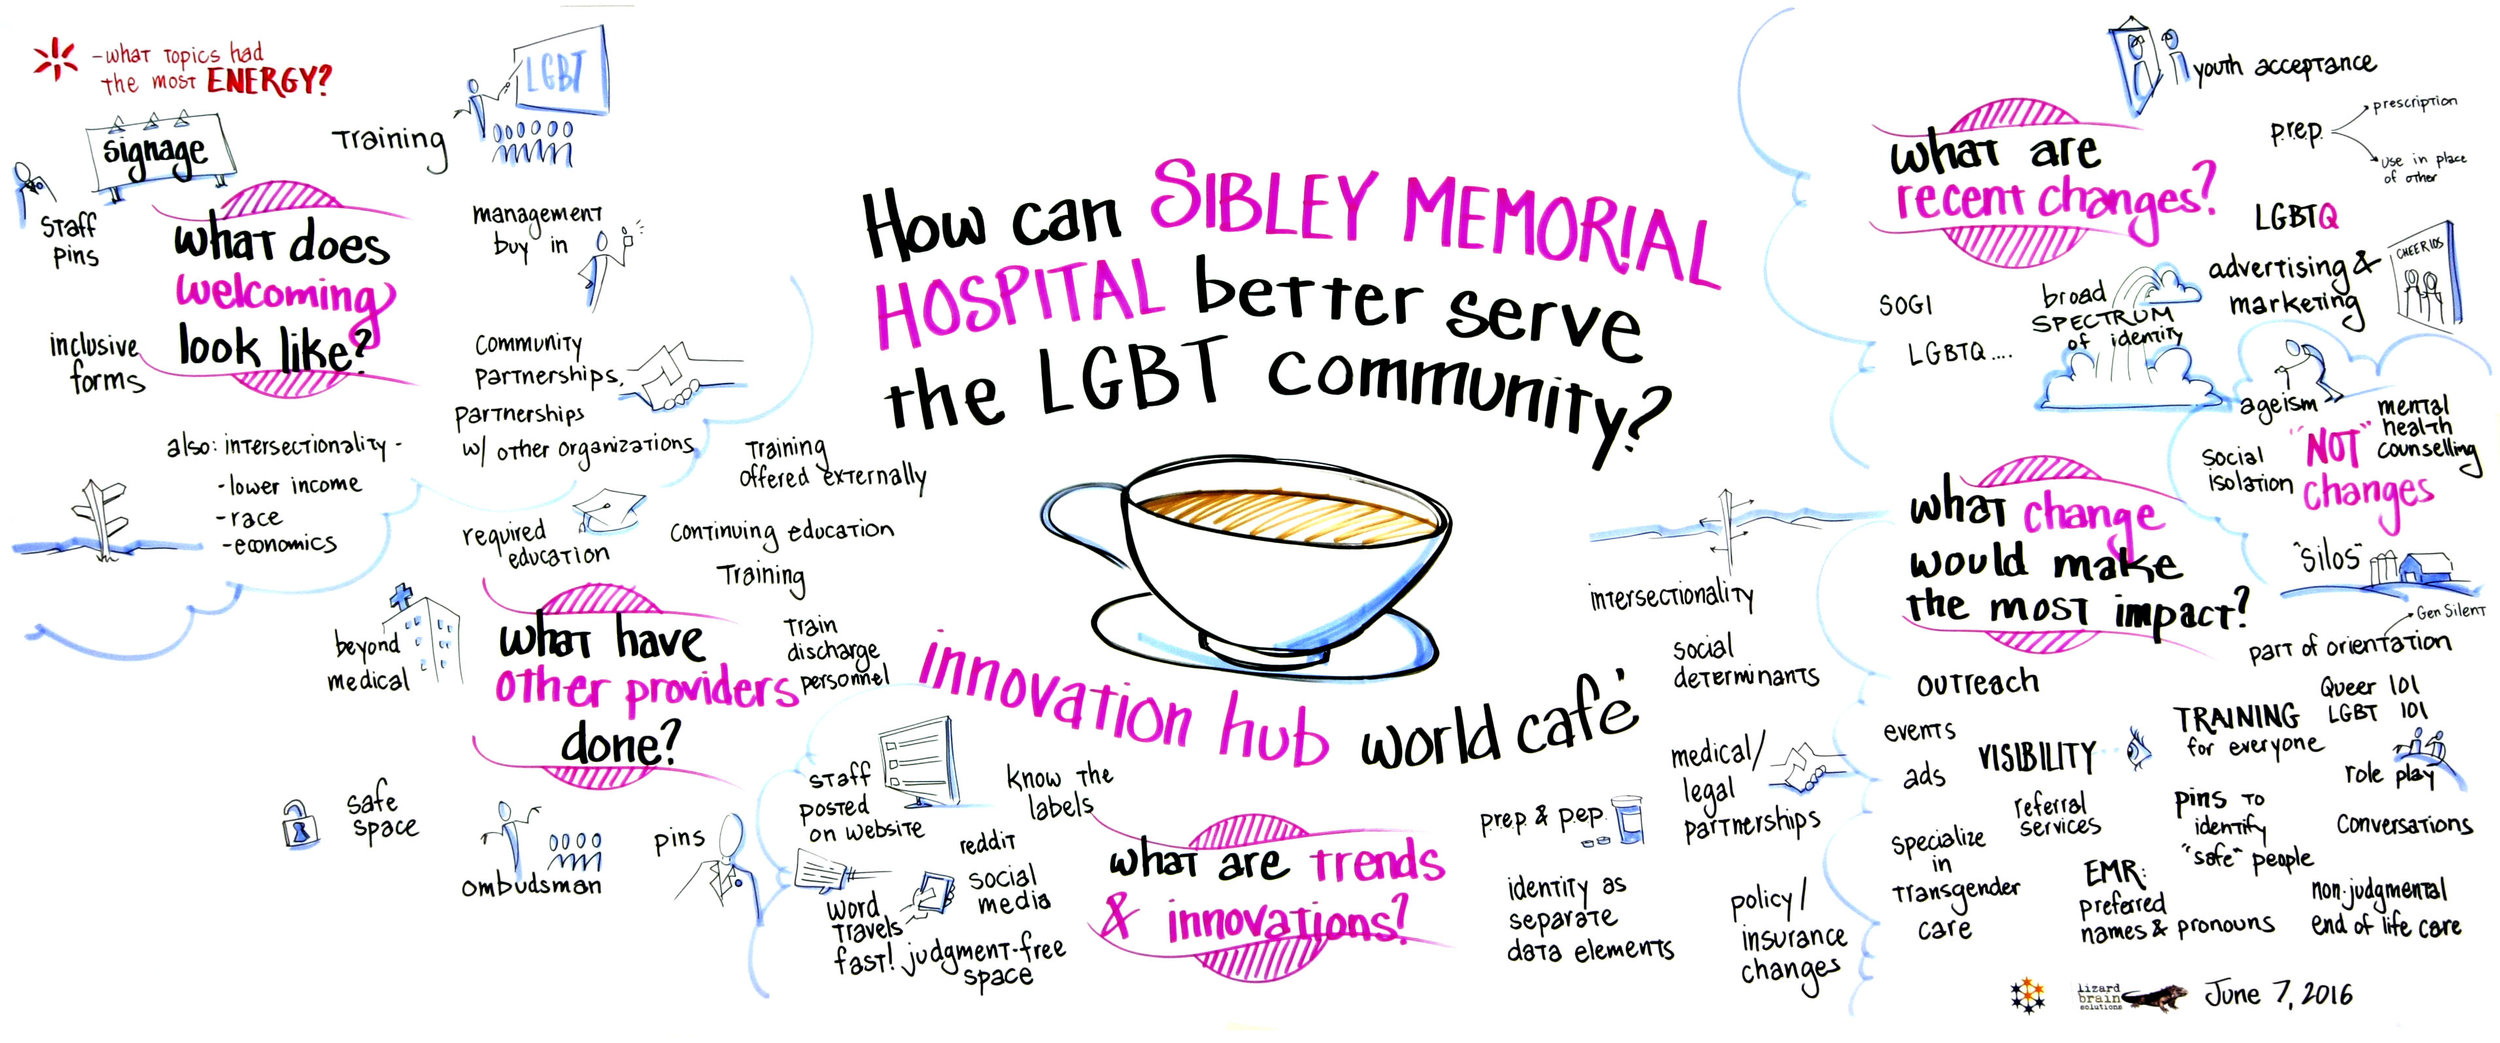 Sibley LGBT World Cafe large chart 2016.06.10.jpg